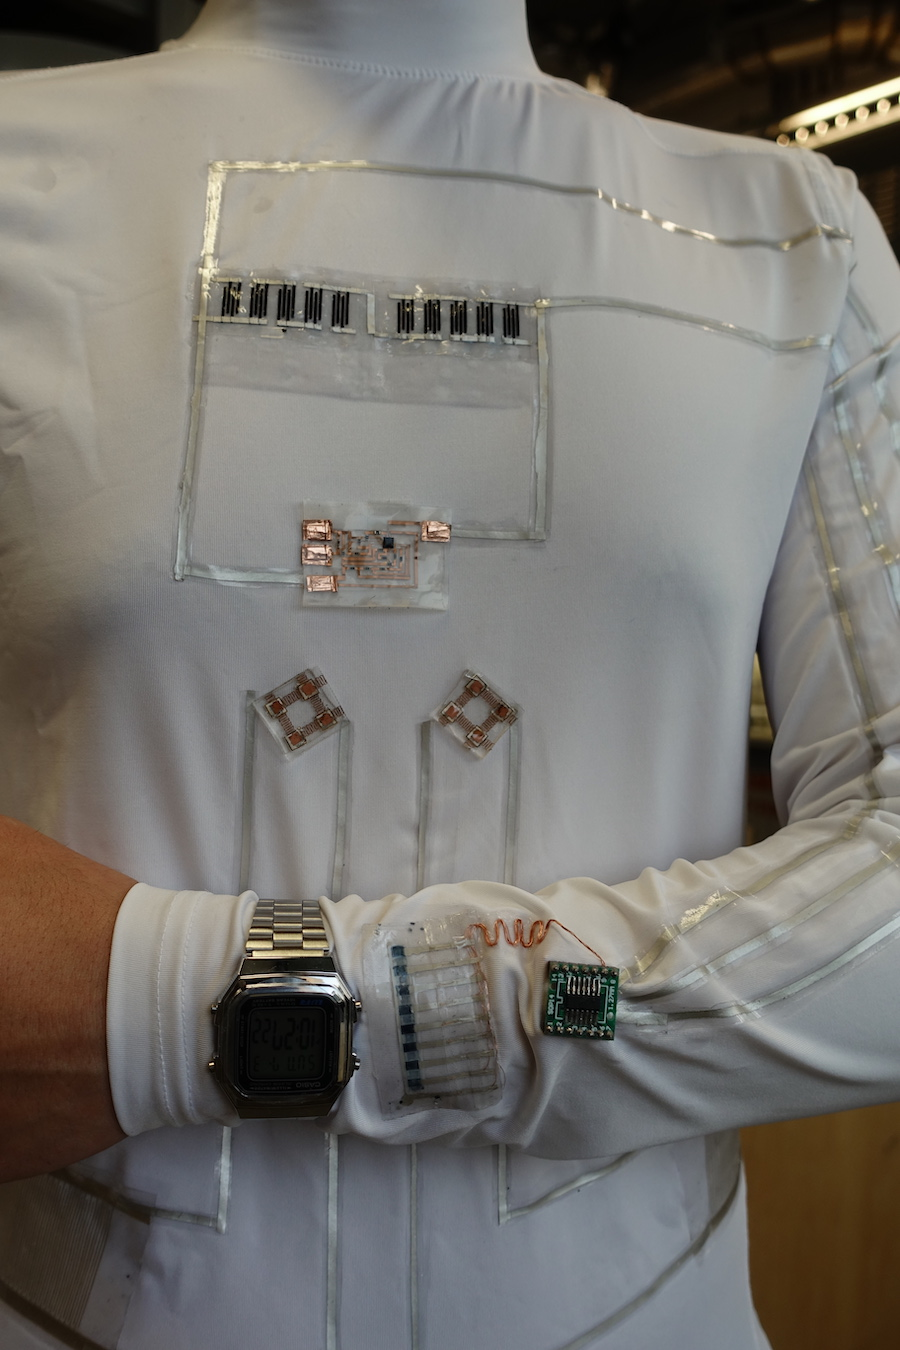 Stretchable electronics on a white long sleeved shirt